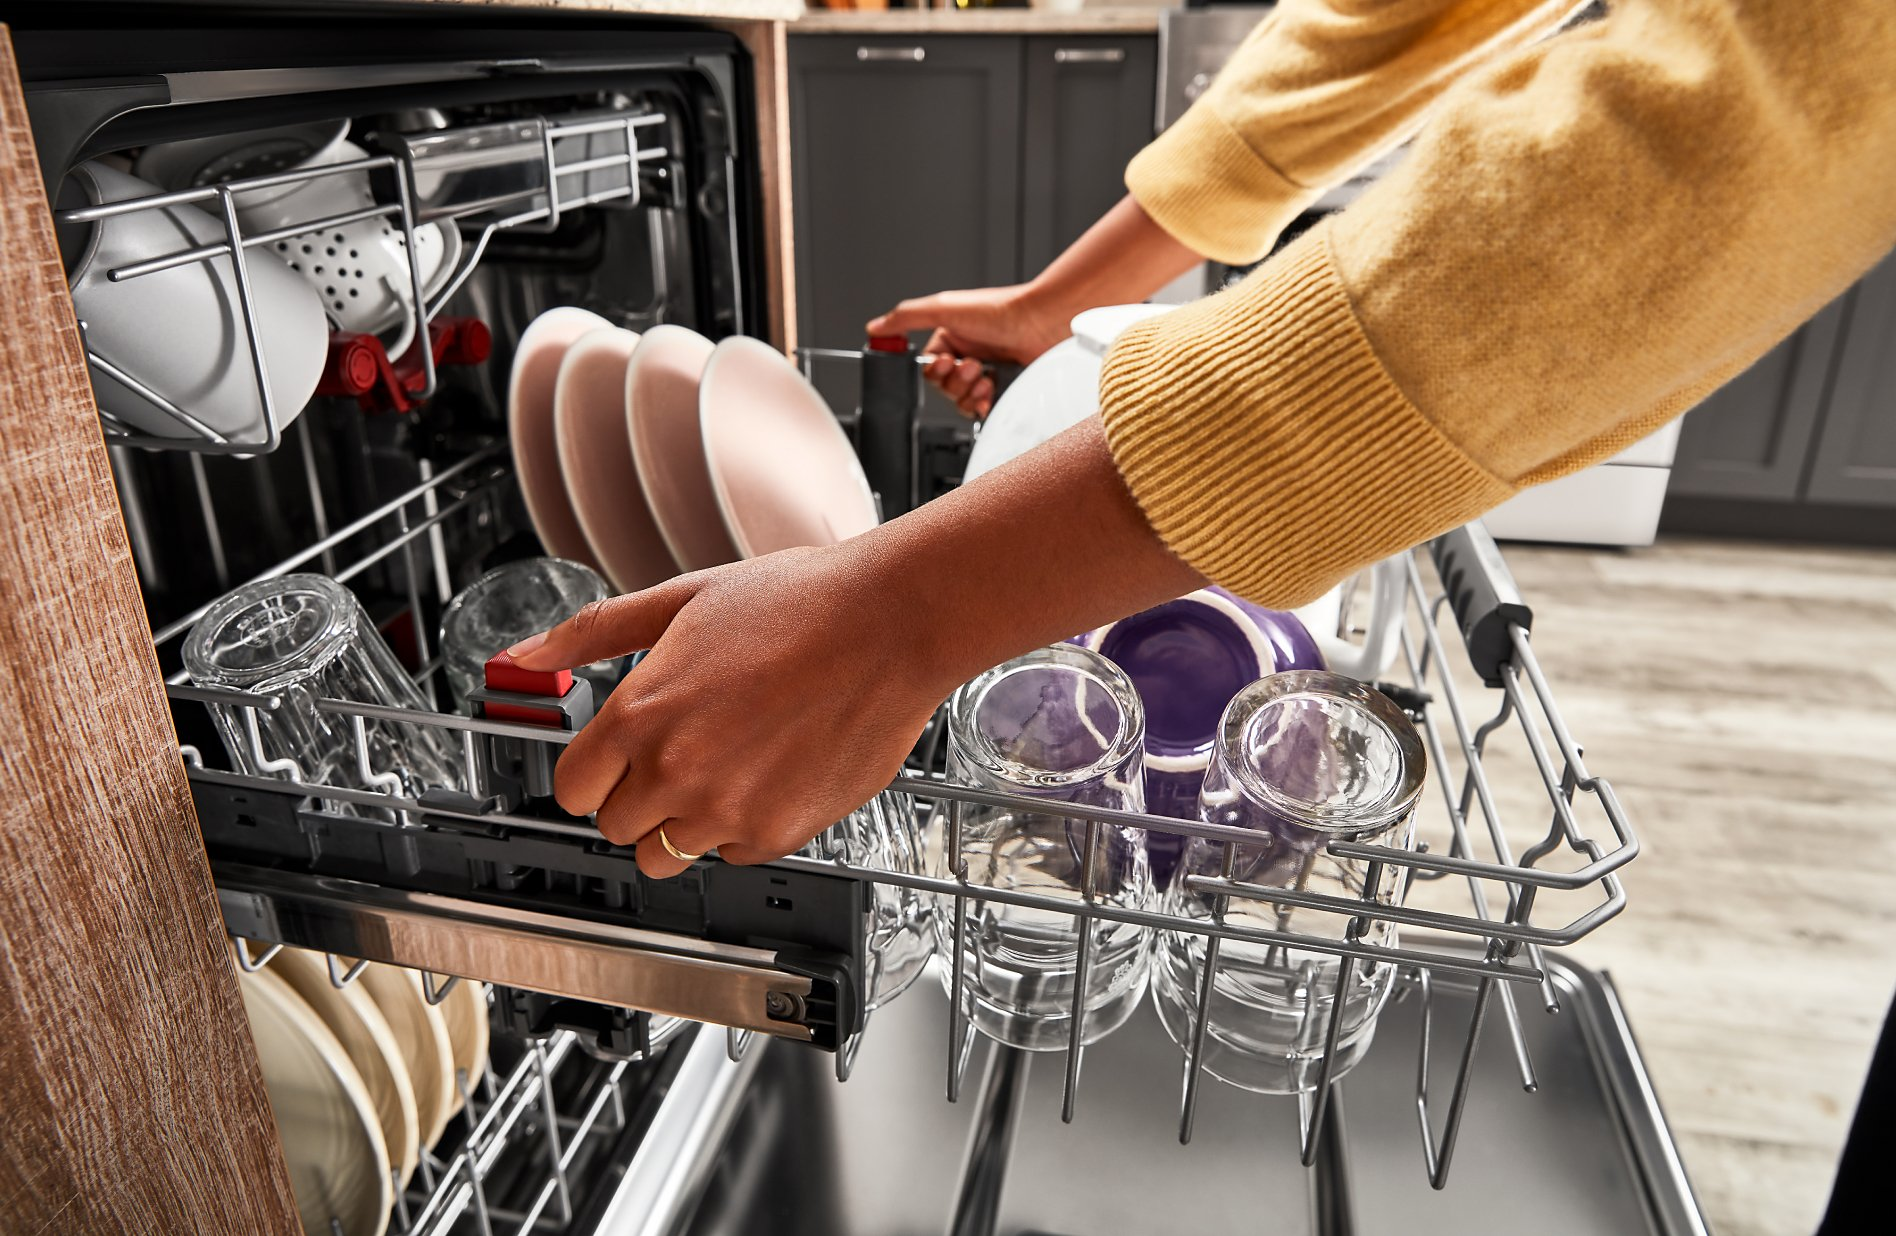 Hands pulling out 2nd rack of a third rack dishwasher